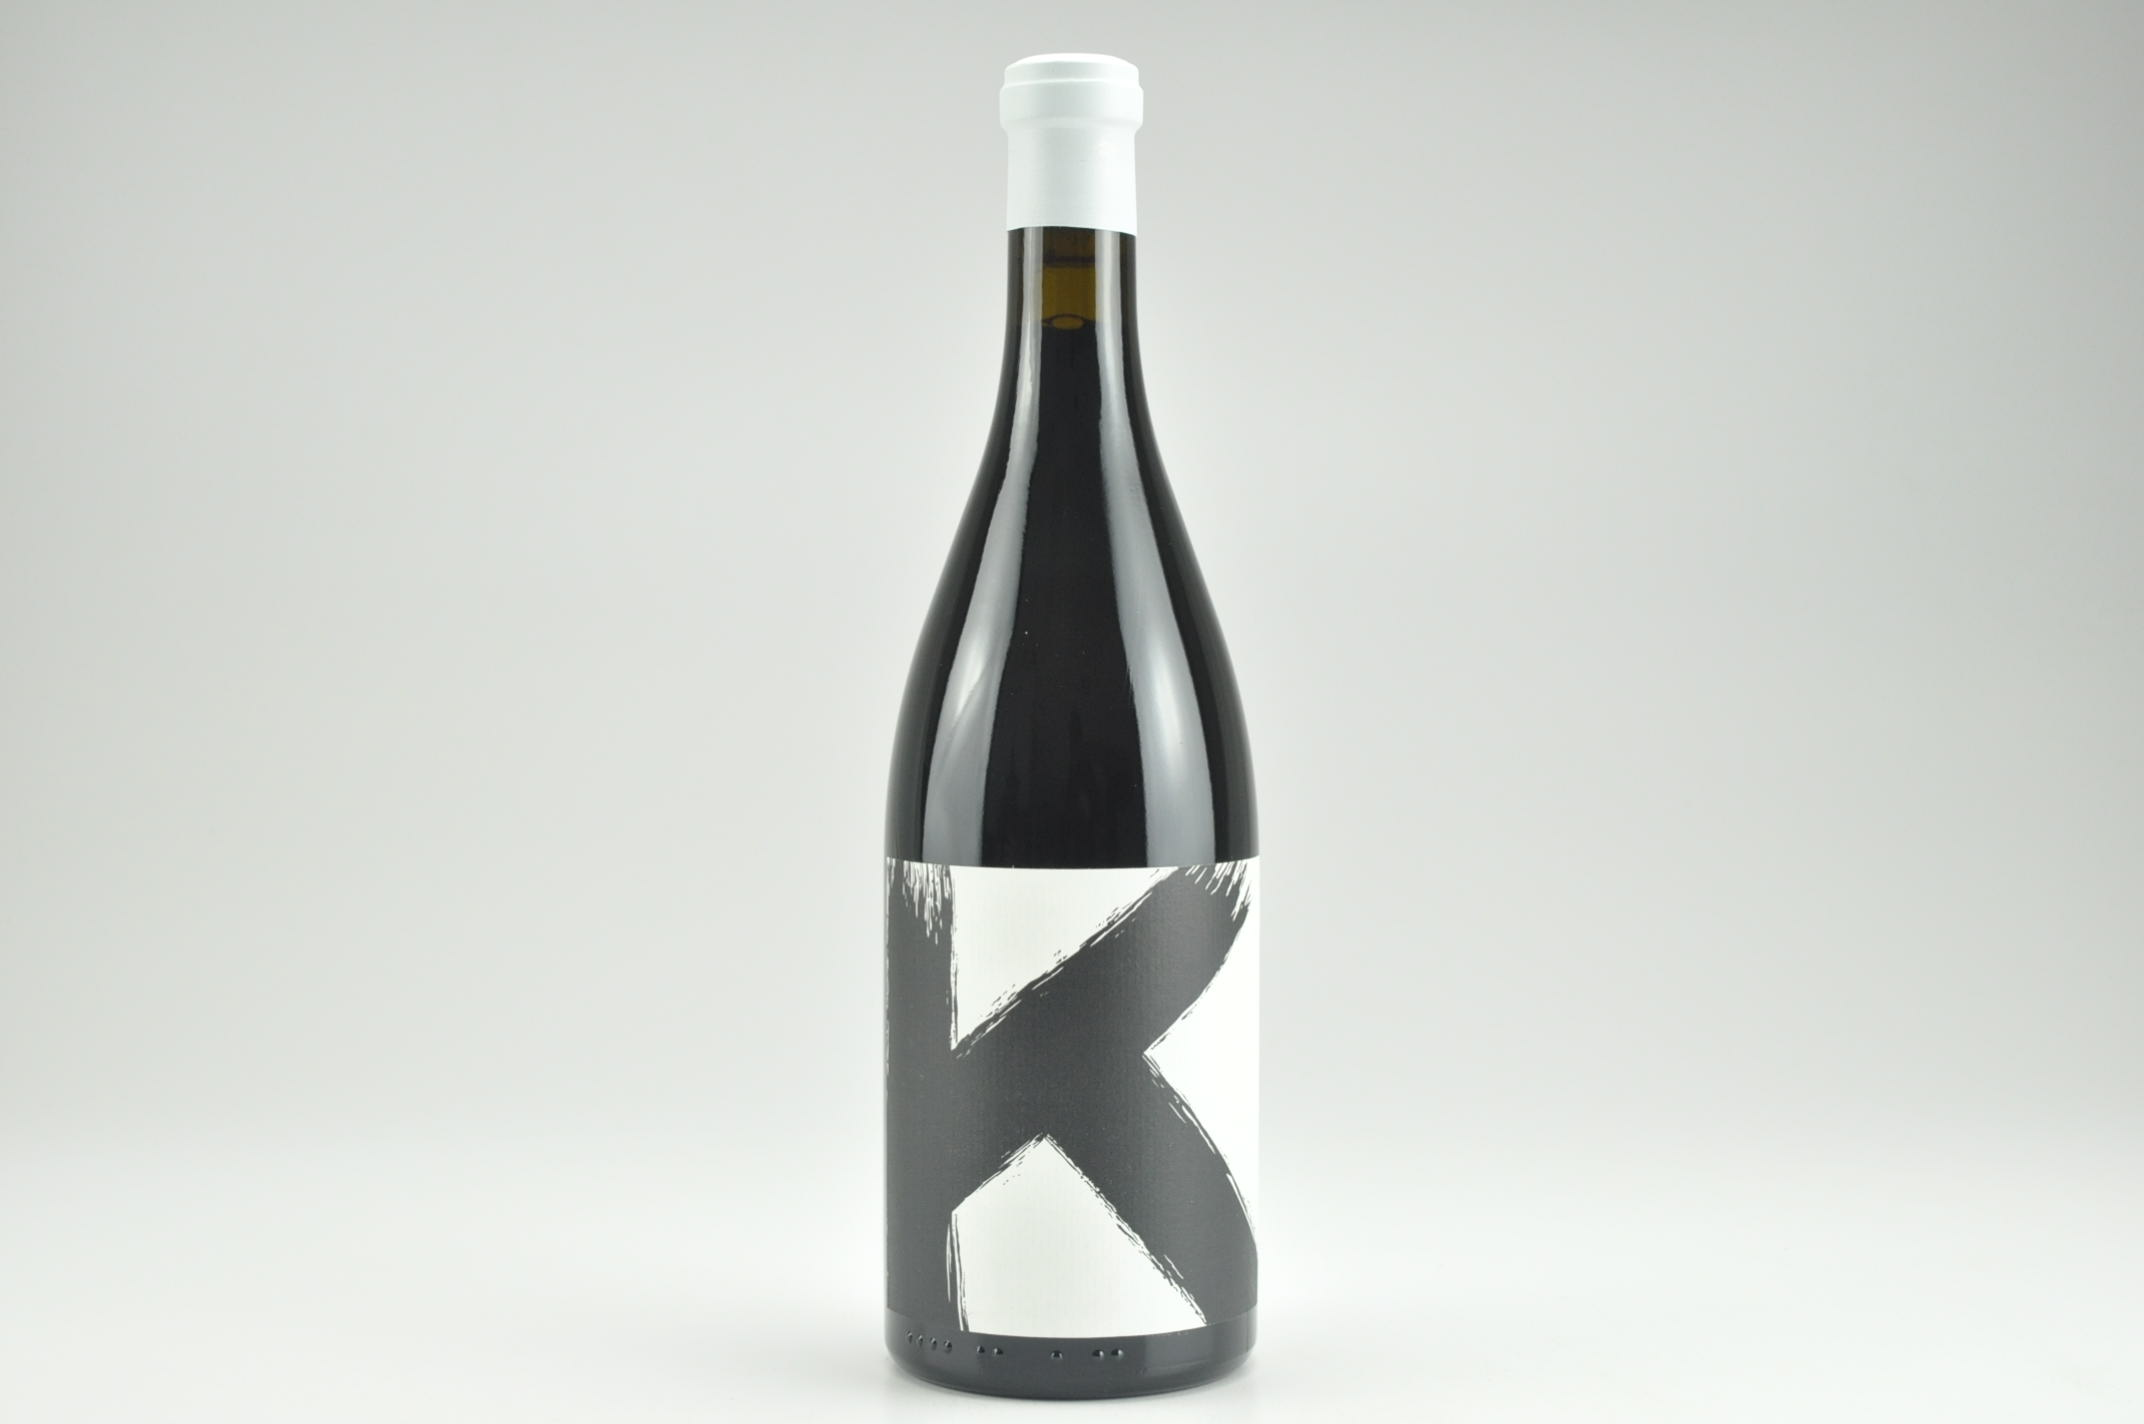 2013 K Vintners The Hidden Syrah, Wahluke Slope RP--97